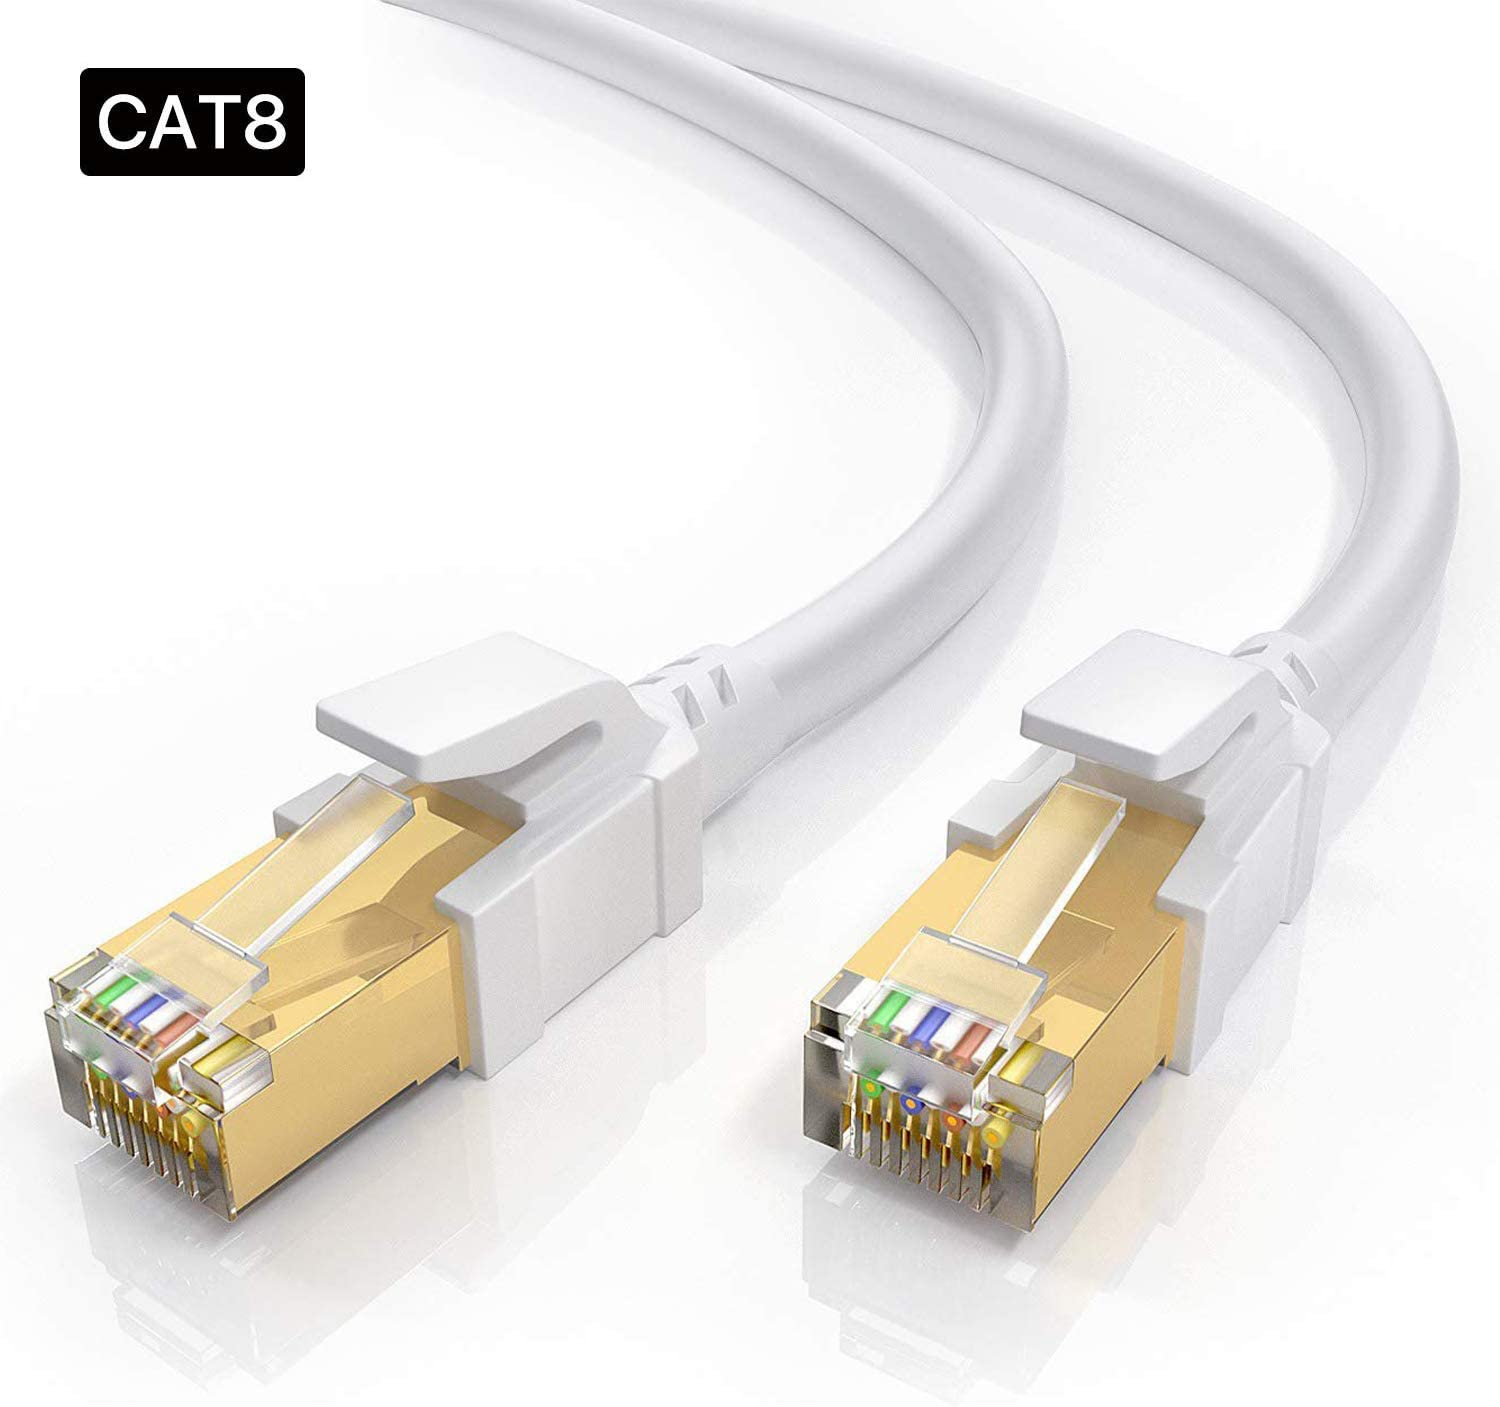 Laptop Gaming 26AWG Lastest 40Gbps 2000Mhz SFTP Patch Cord,with Gold Plated RJ45 Connector Comfortable with Router Modem Hub White 5FT 2Pack LoYinLo CAT8 Ethernet Cable PC